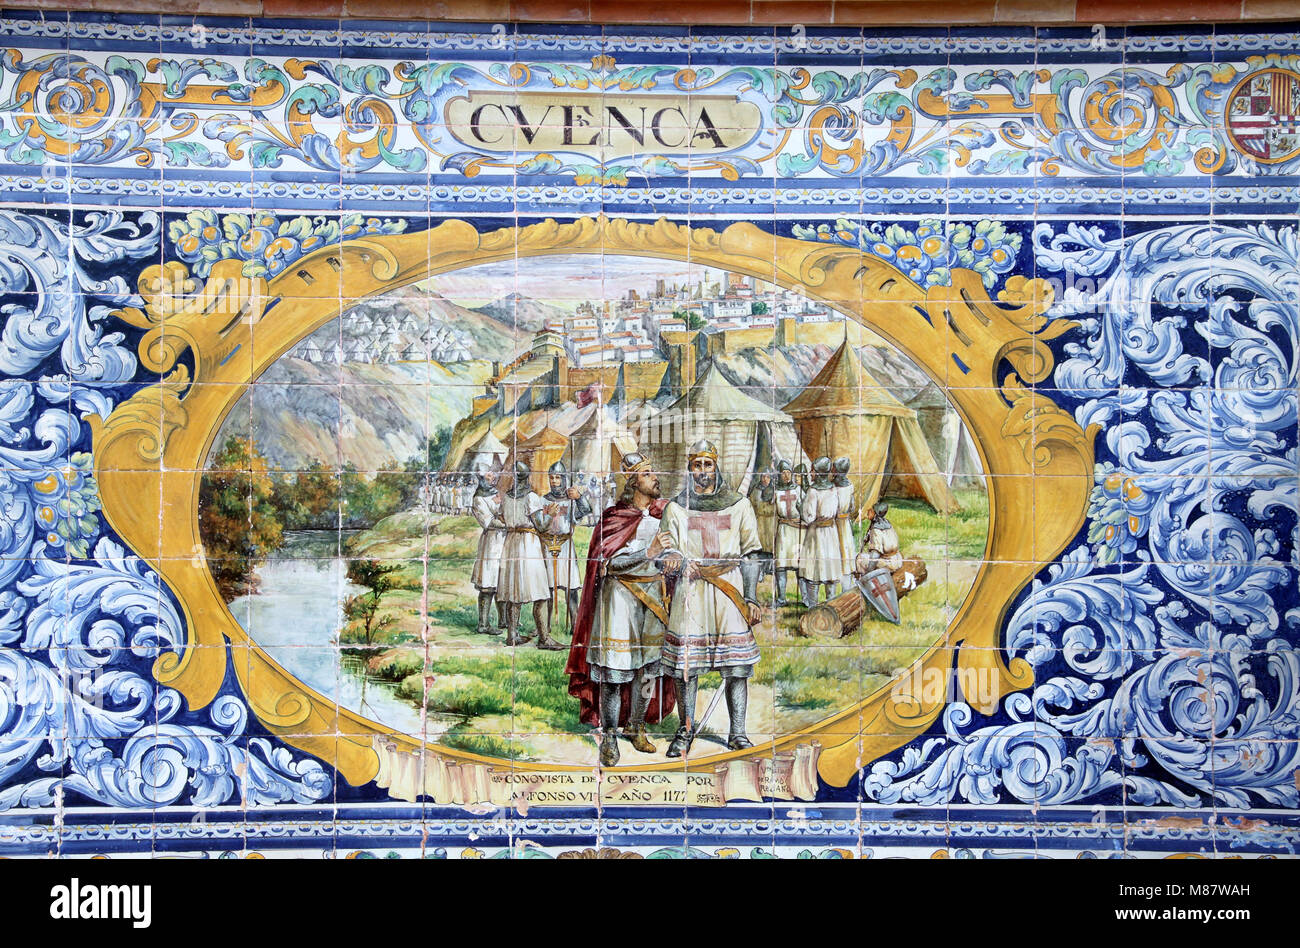 Cuenca depicted at the Alcoves of the Provinces in Seville - Stock Image